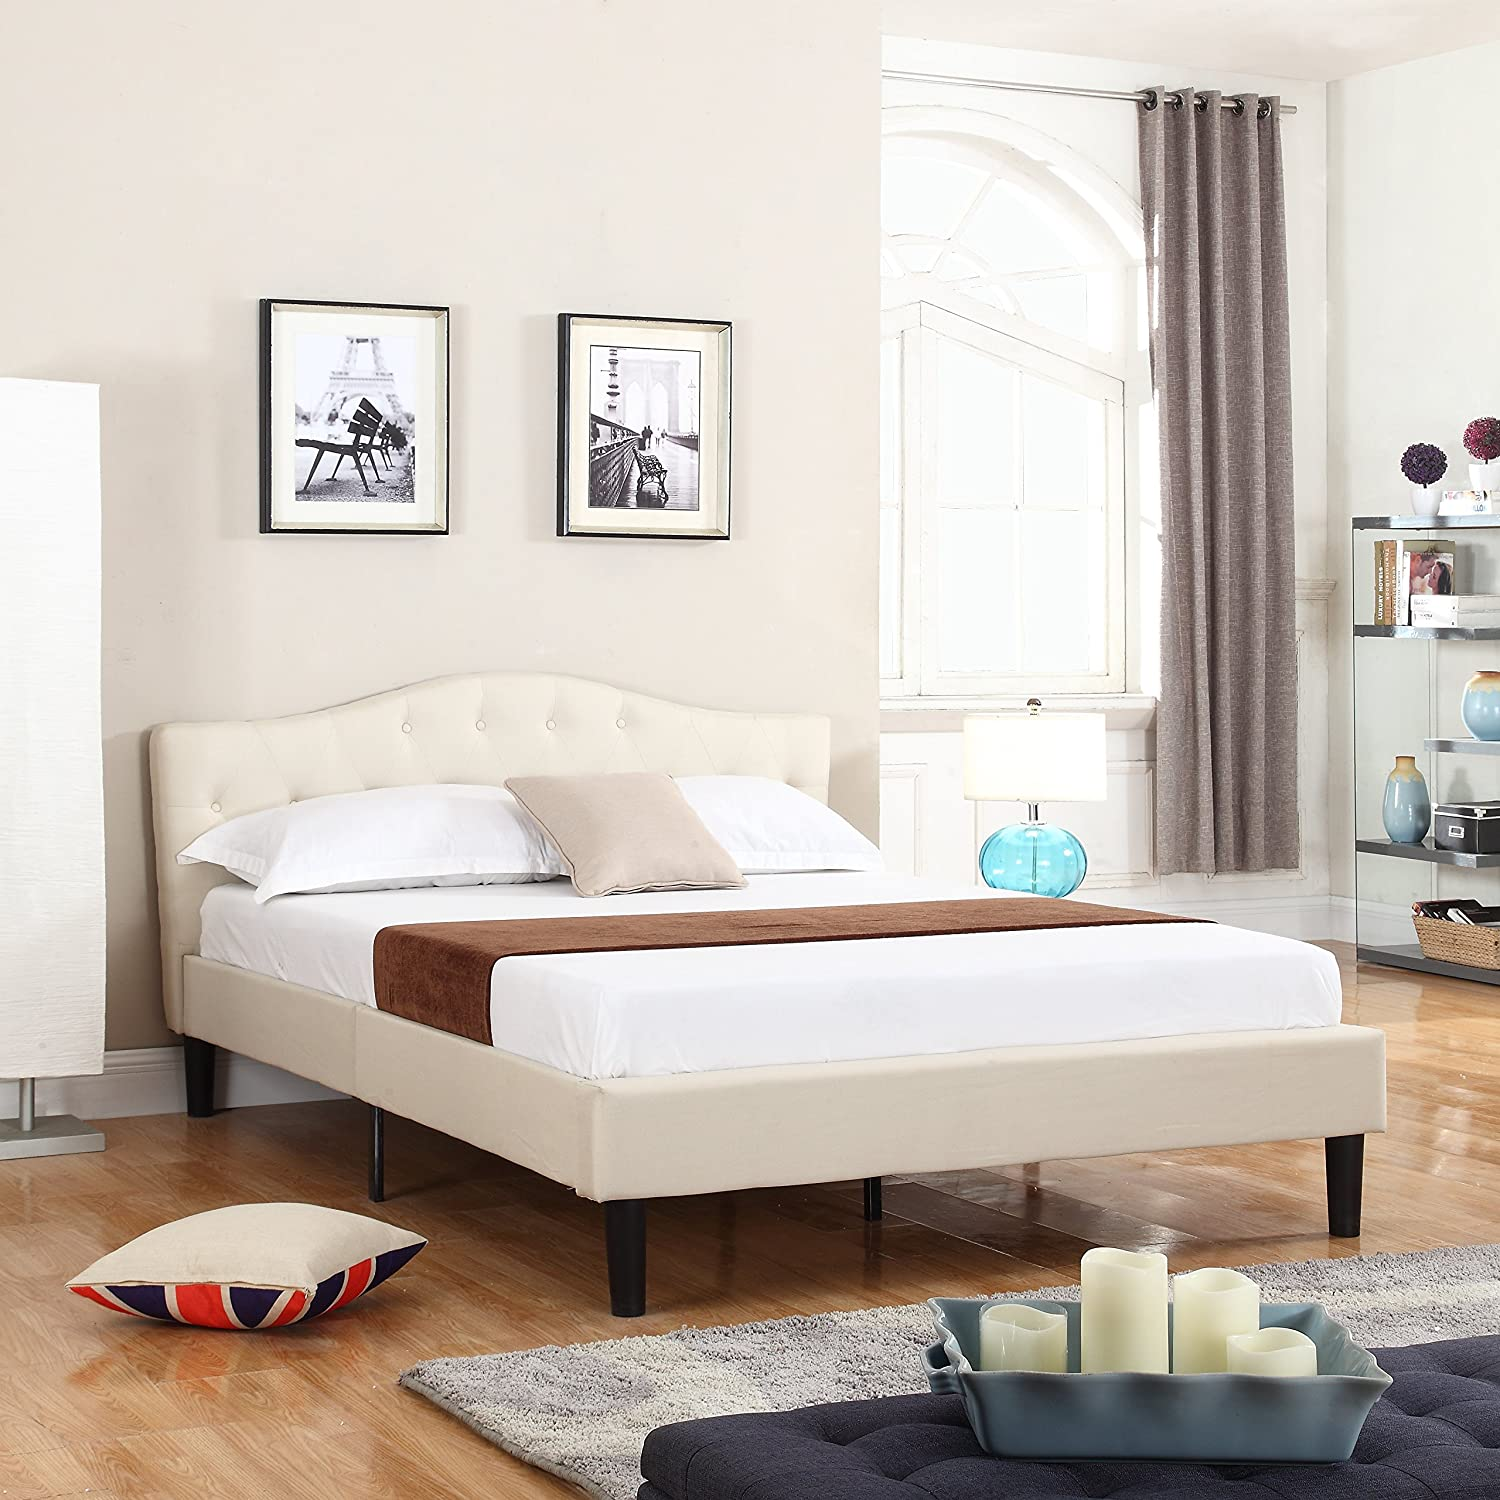 Divano Roma Furniture Classic Deluxe Linen Low Profile Platform Bed Frame with Curved Headboard Design and Button Details - Fits Queen Mattresses - Ivory